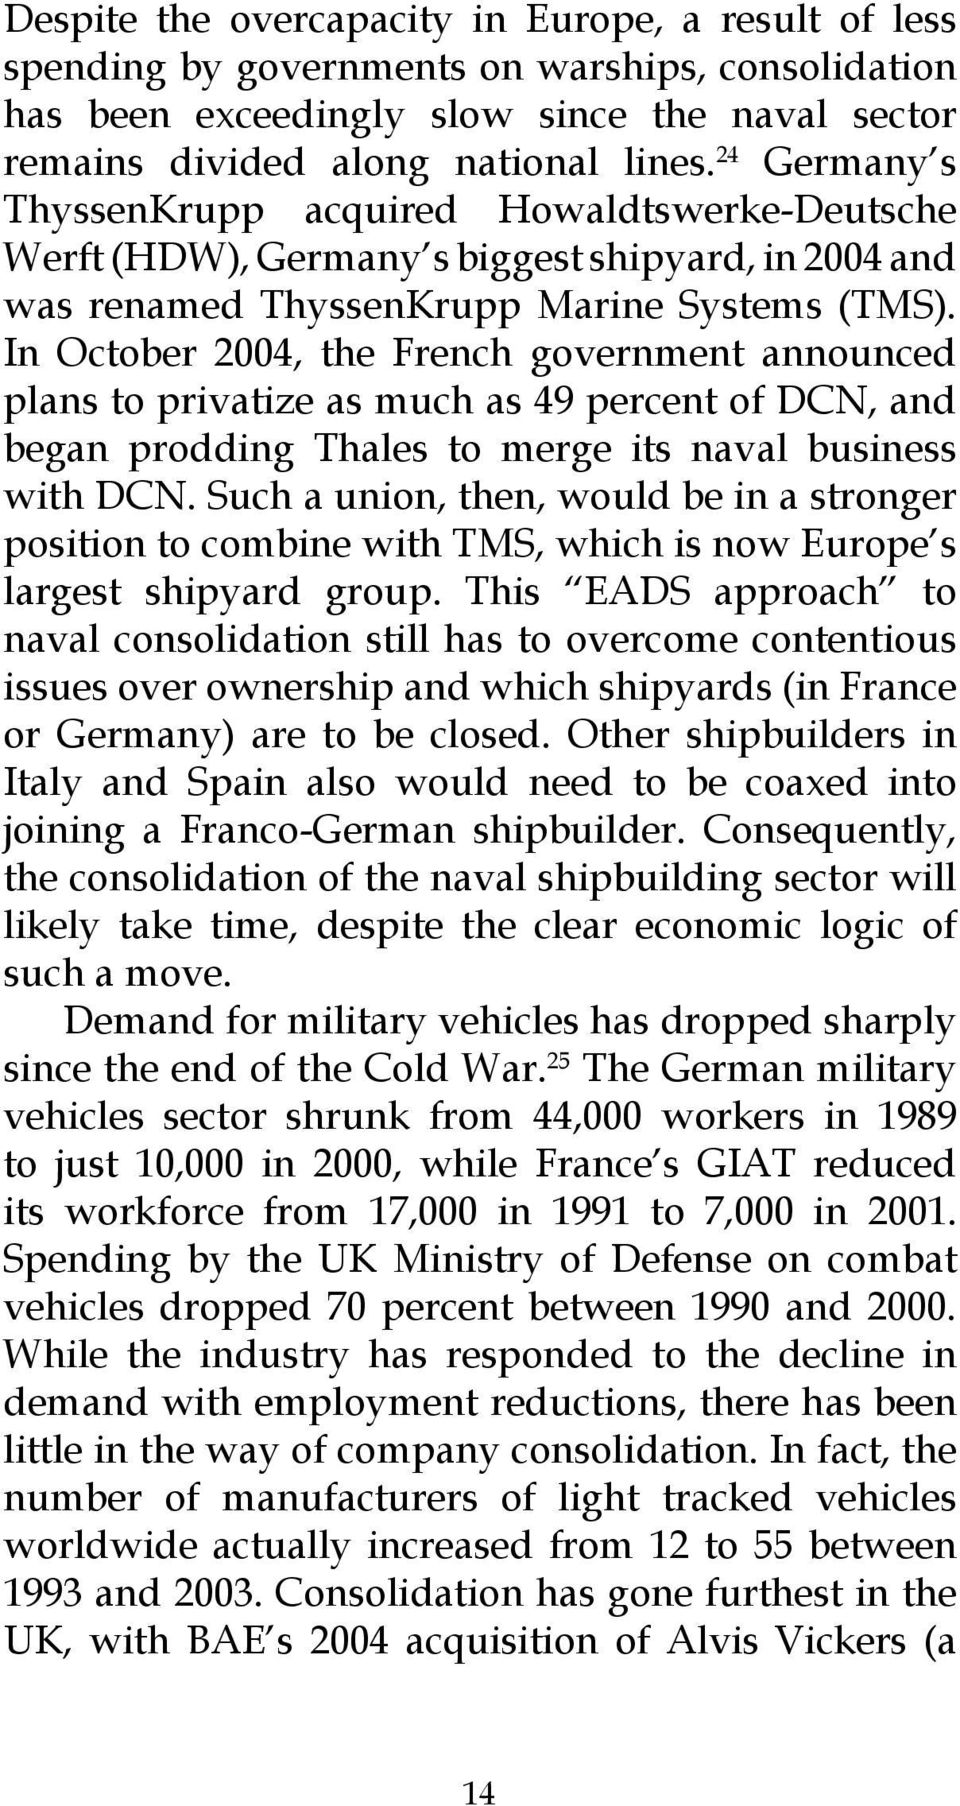 In October 2004, the French government announced plans to privatize as much as 49 percent of DCN, and began prodding Thales to merge its naval business with DCN.